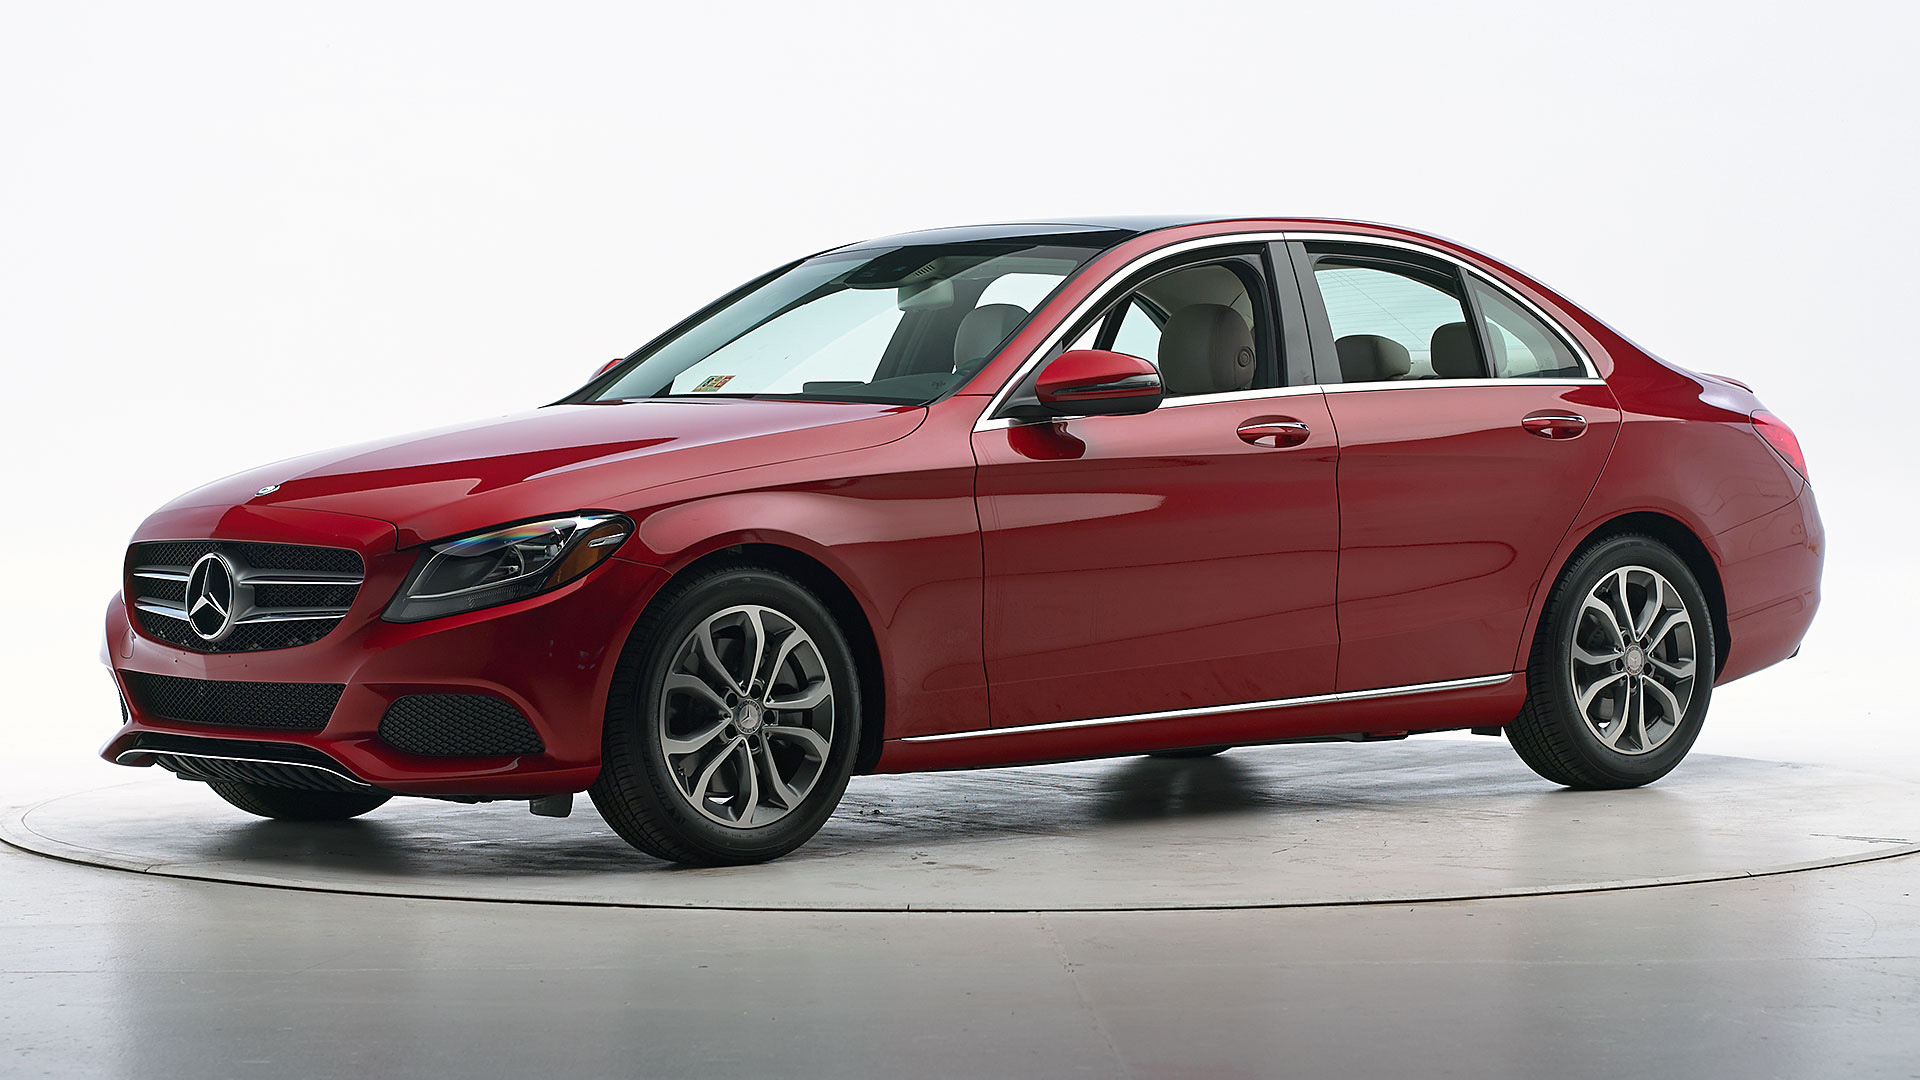 2016 Mercedes-Benz C-Class 4-door sedan